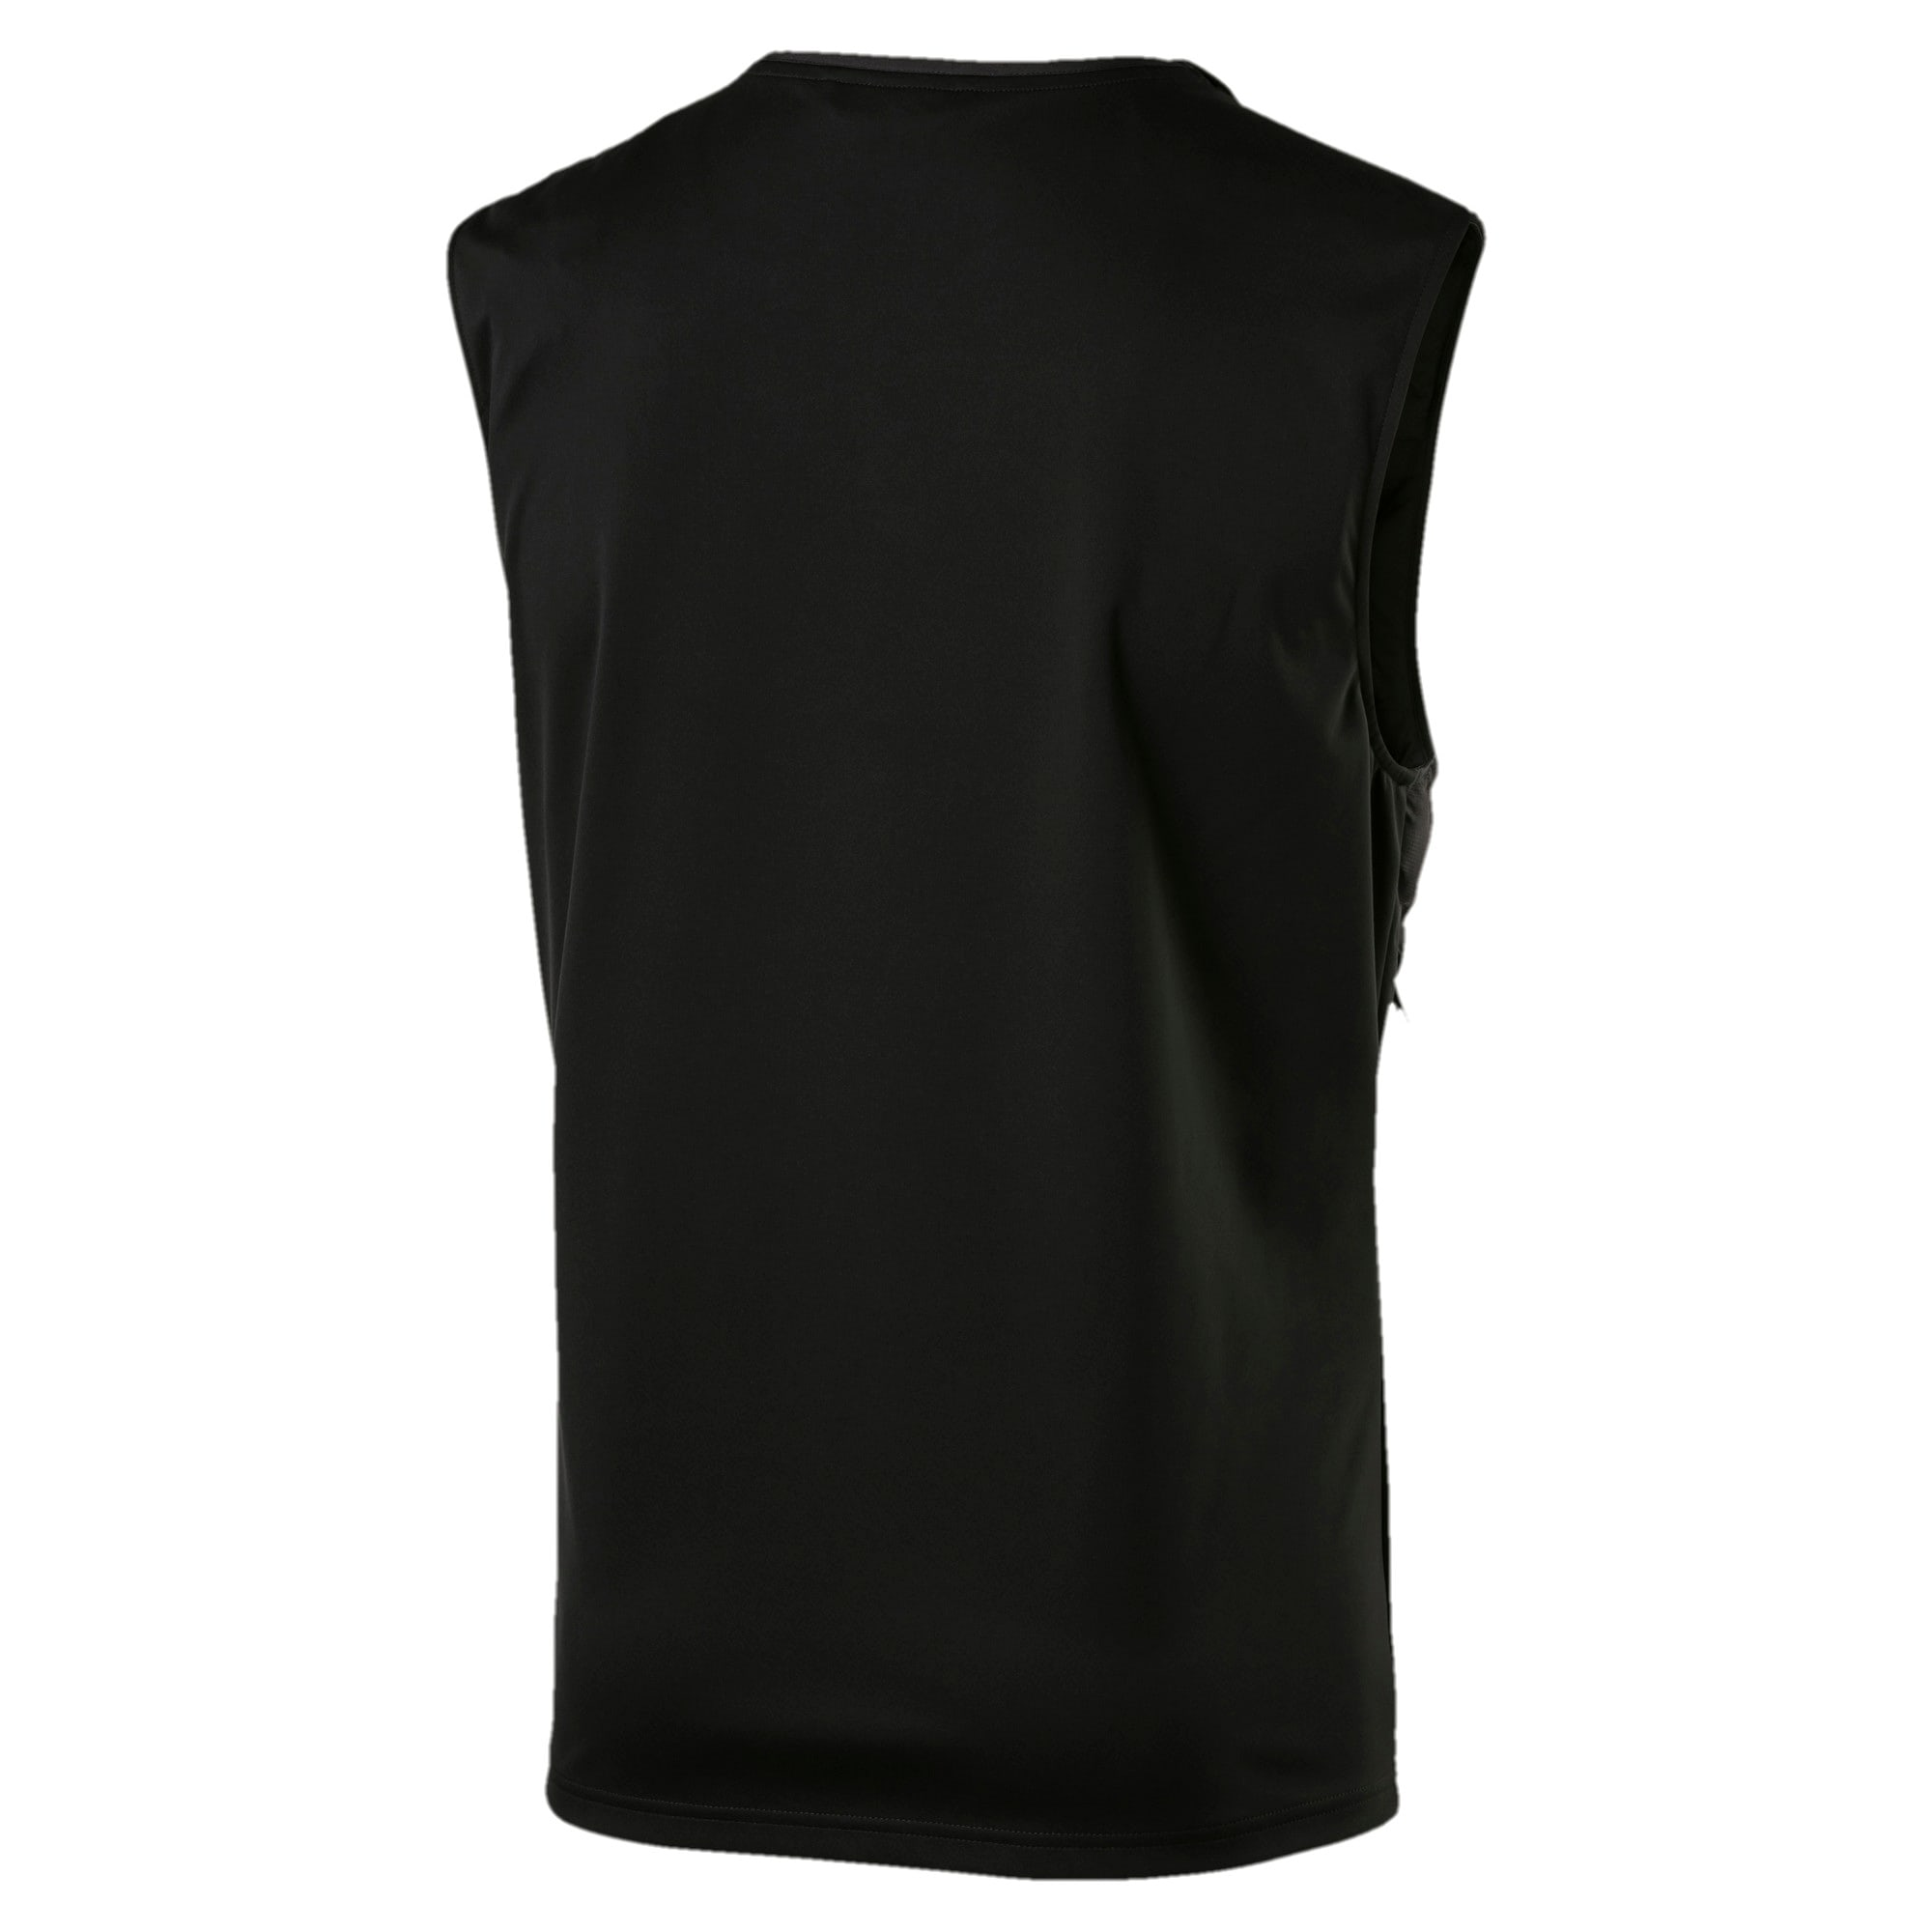 Thumbnail 4 of NeverRunBack Men's Protect Vest, Puma Black, medium-IND